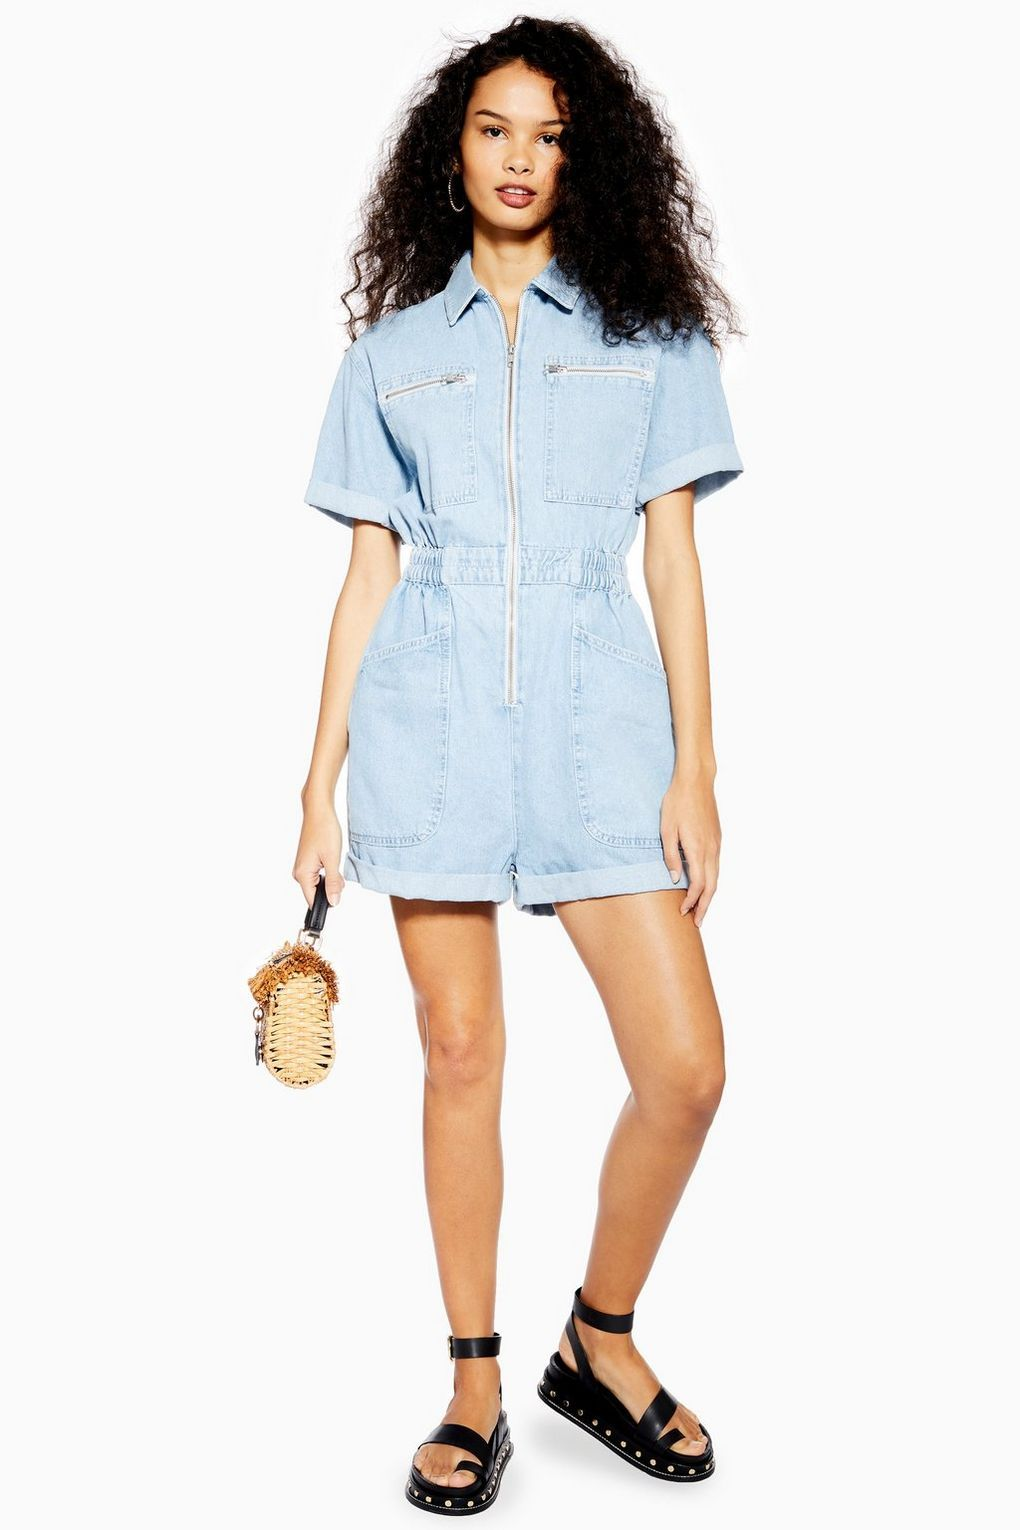 b8f5edff00b 38 Cute Summer Outfits for 2018 - What to Wear This Summer